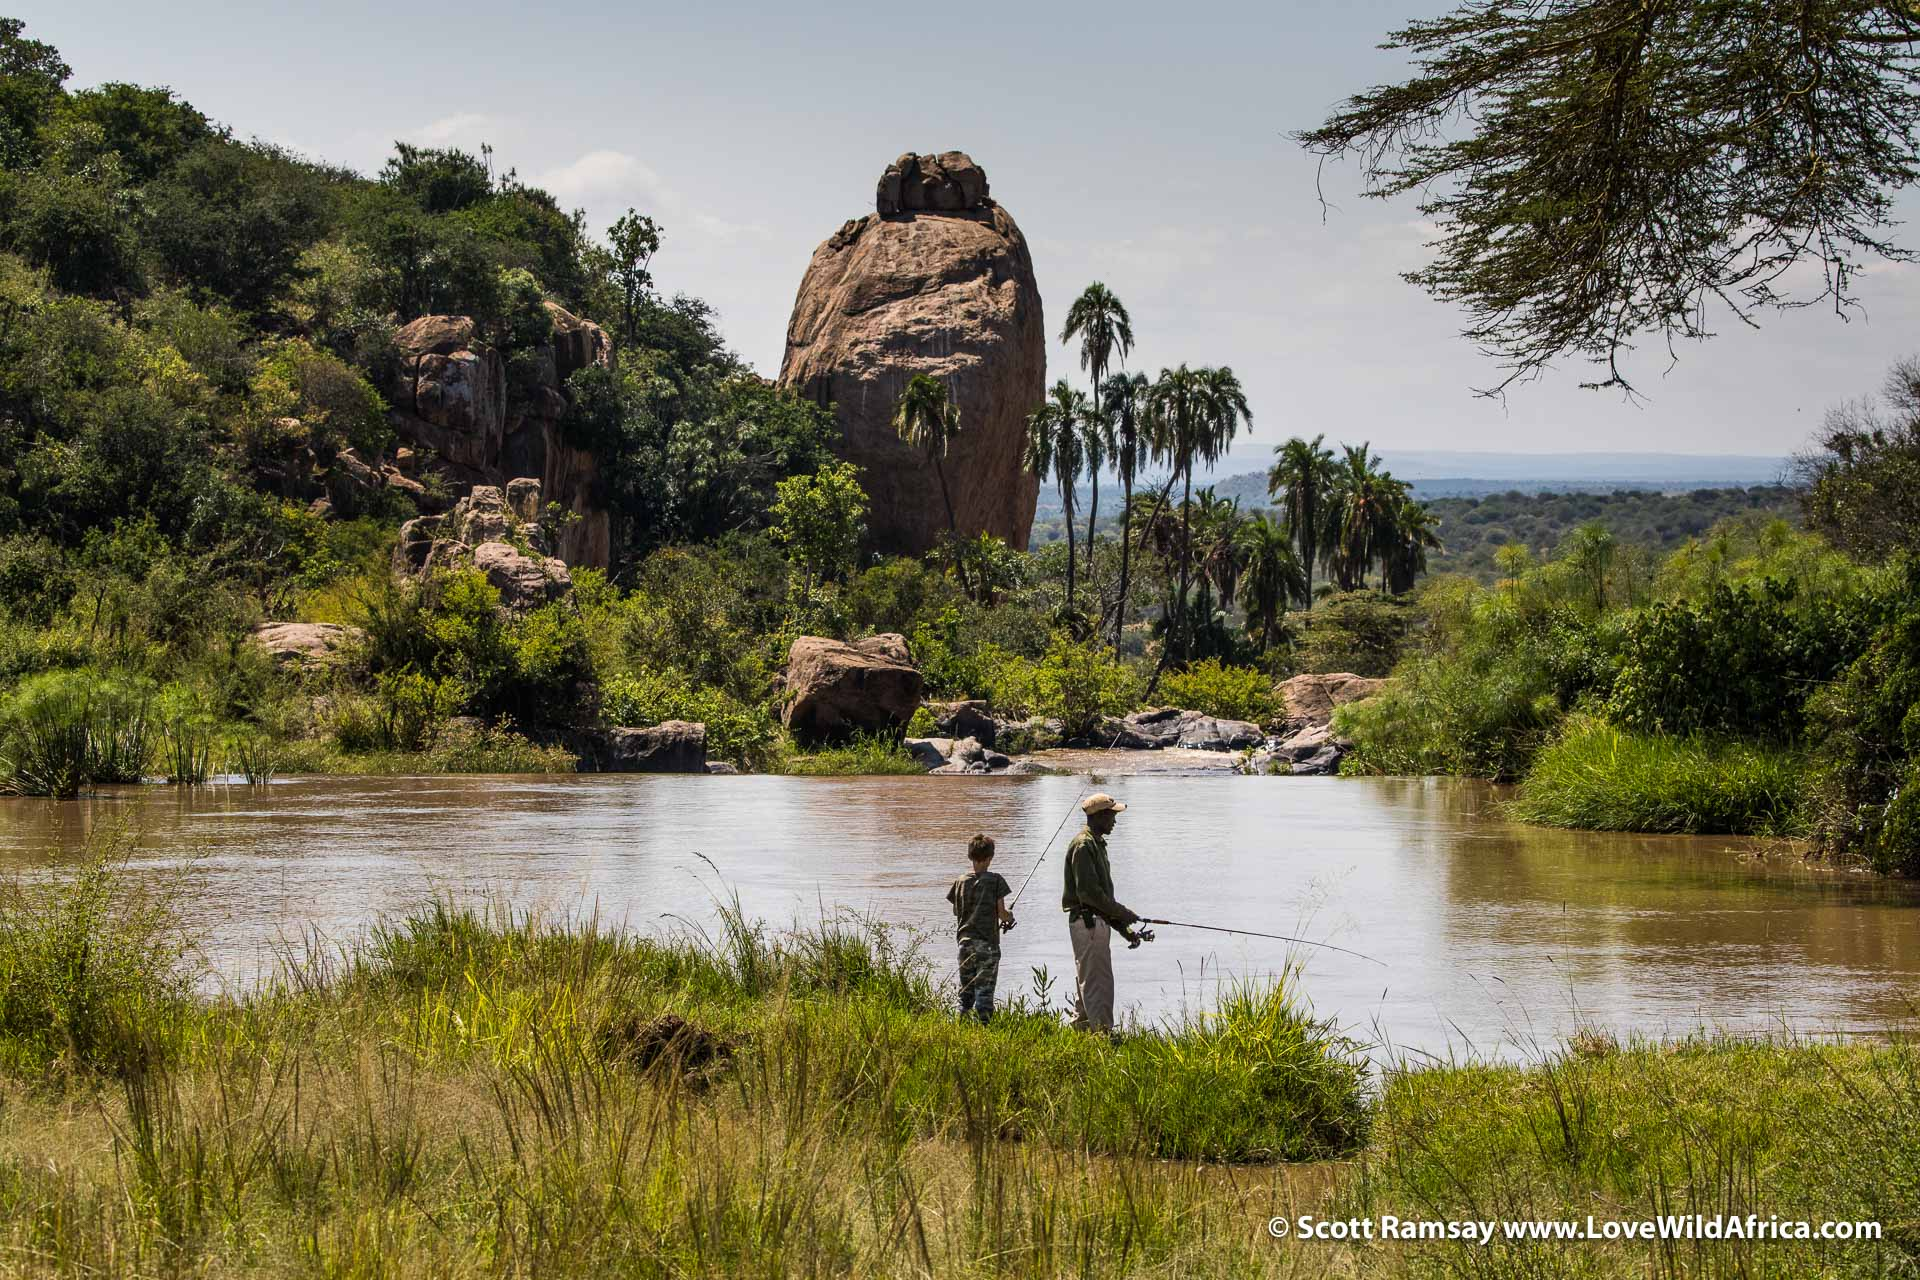 Fishing in the Ewaso Ngiro.